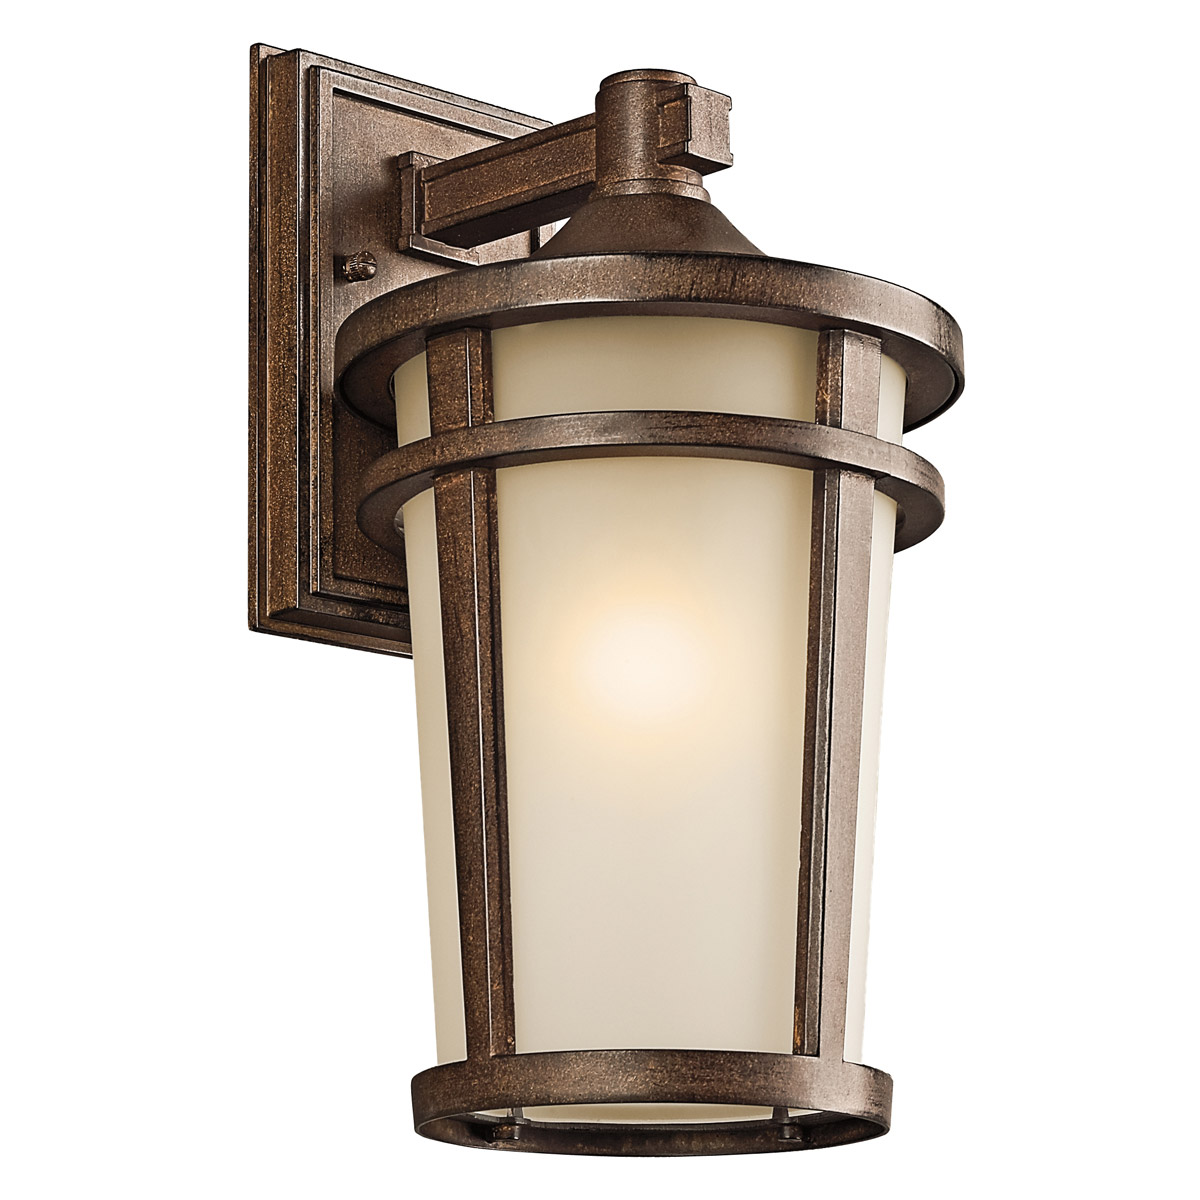 Guide to exterior wall mounted light fixtures commercial Industrial exterior lighting fixtures